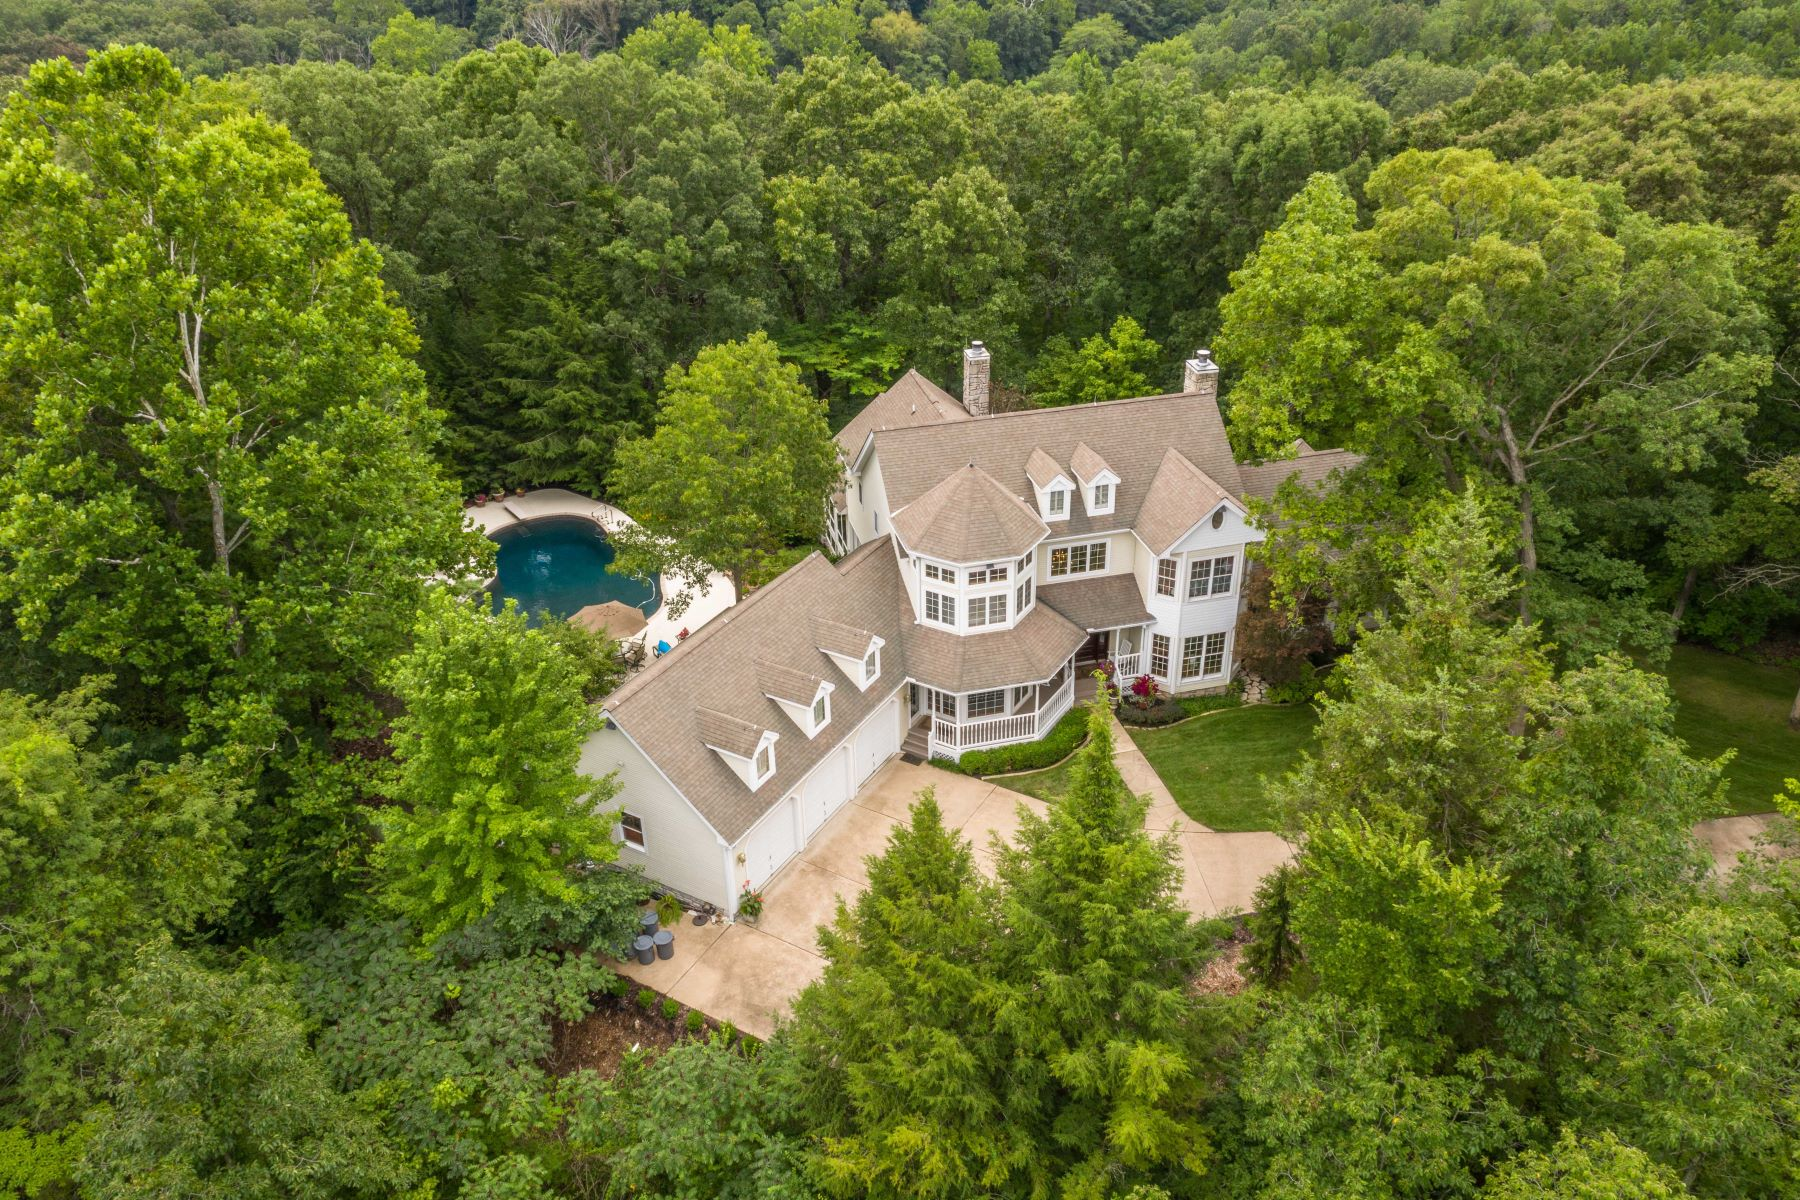 Single Family Homes for Sale at Exquisite Country Estate Nestled on Over 16 Lush Acres in Wildwood 2525 Ossenfort Road Glencoe, Missouri 63038 United States